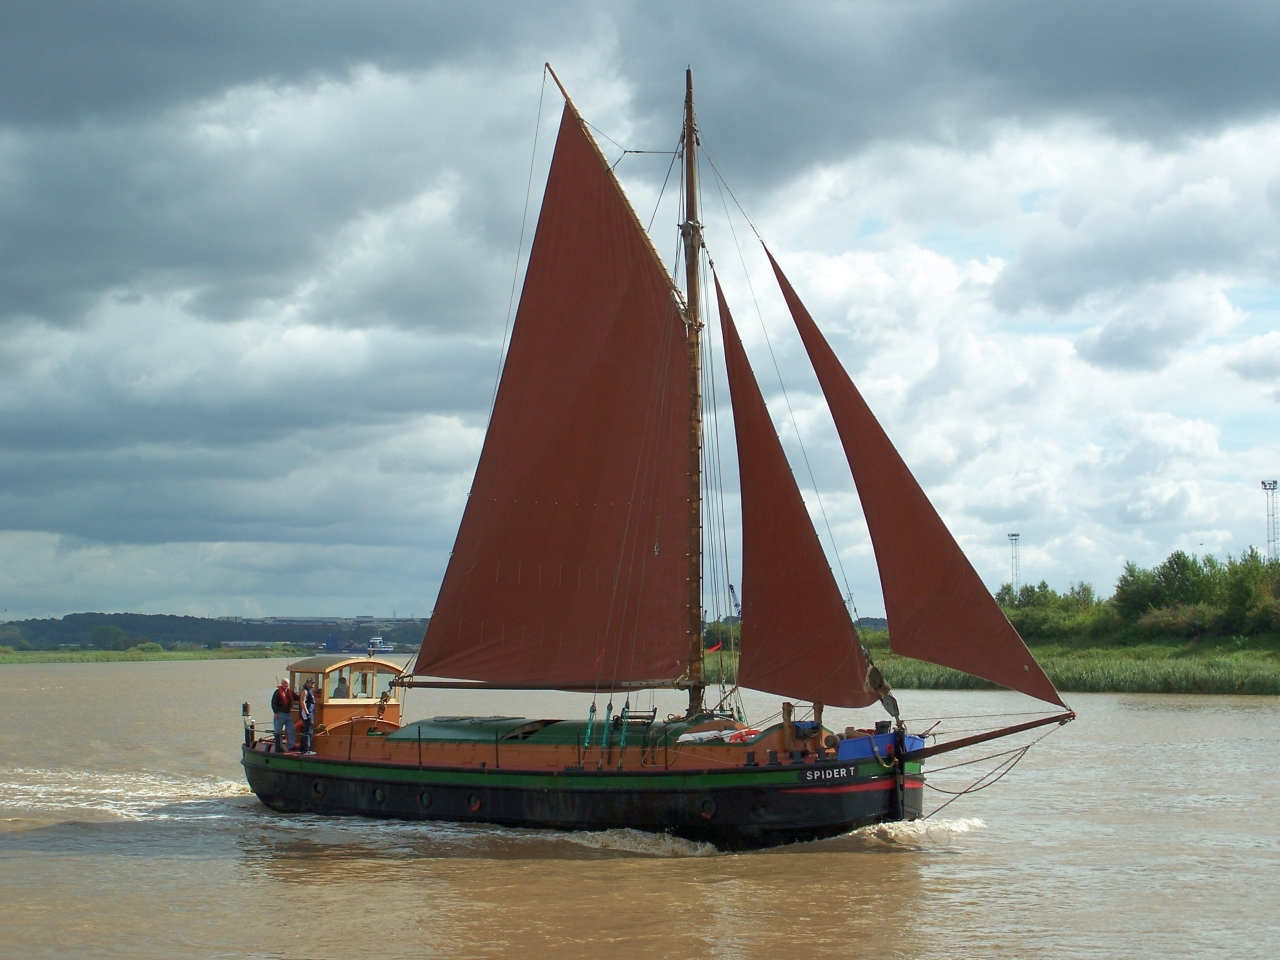 Humber sloop Spider T, rescued and restored by Mal Nicholson and friends – intheboatshed.net